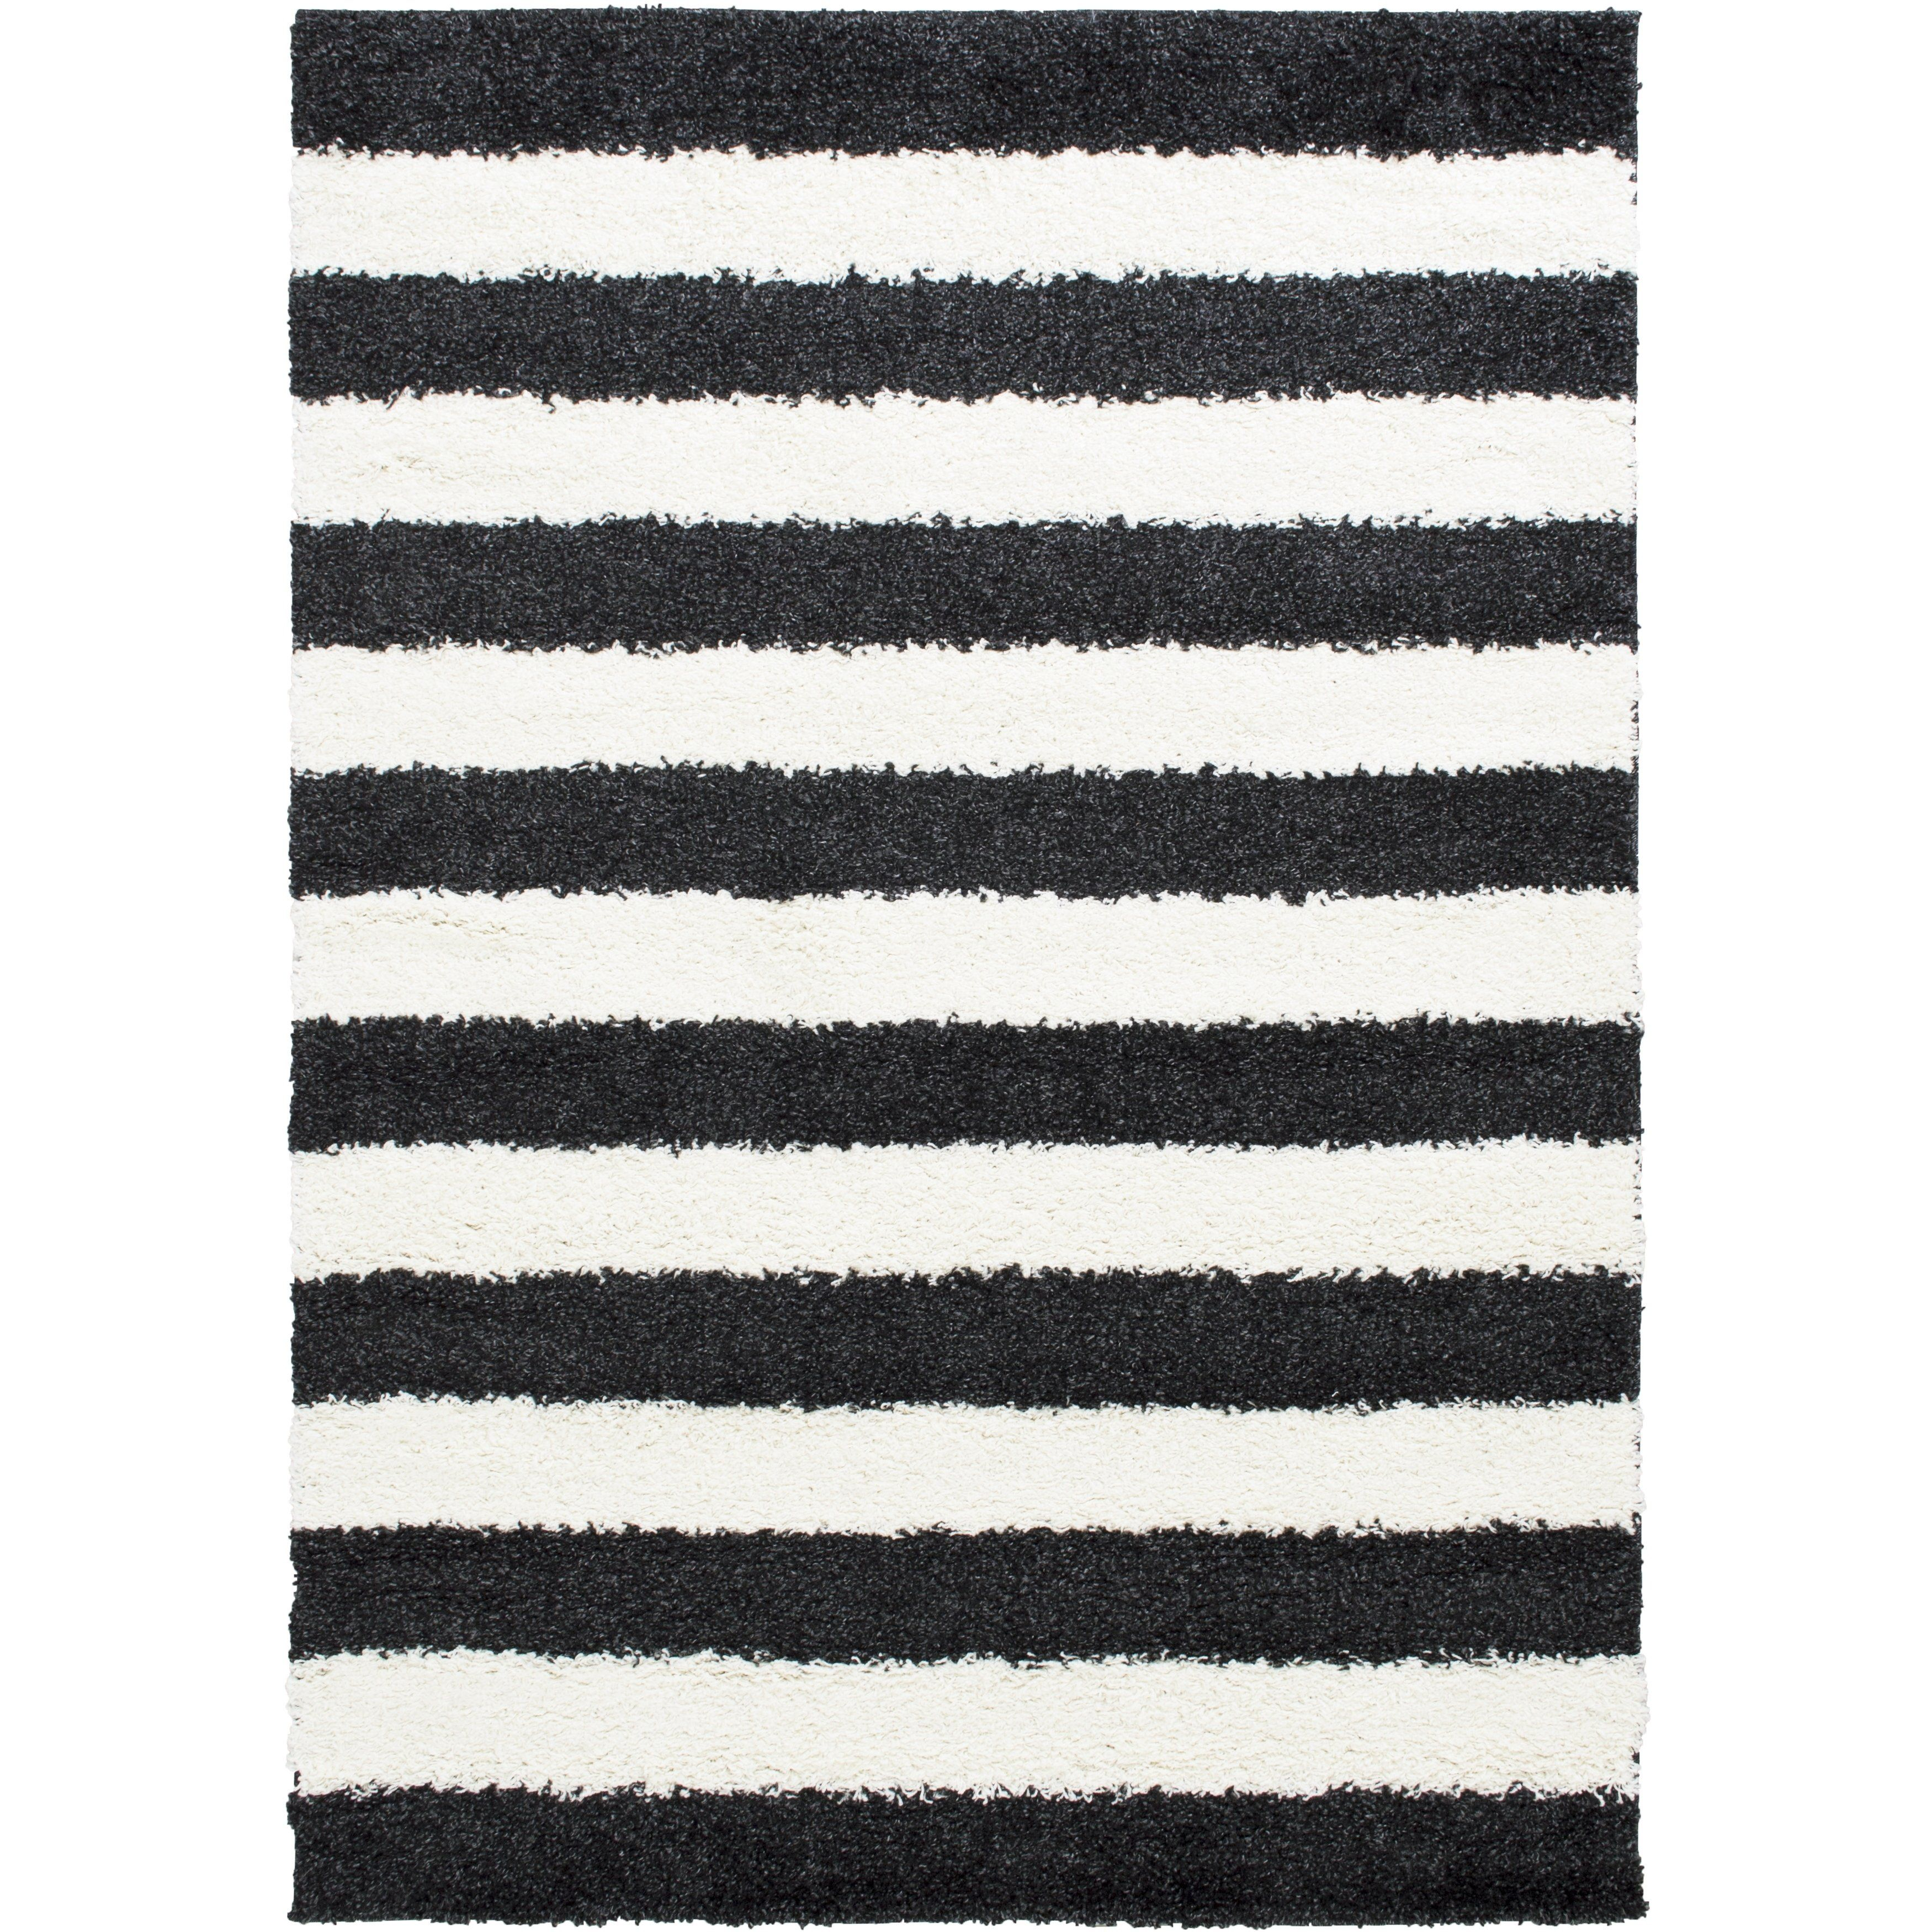 Lyke Home Stripped Anthracite 5x7 Area Rug Black Area Rugs